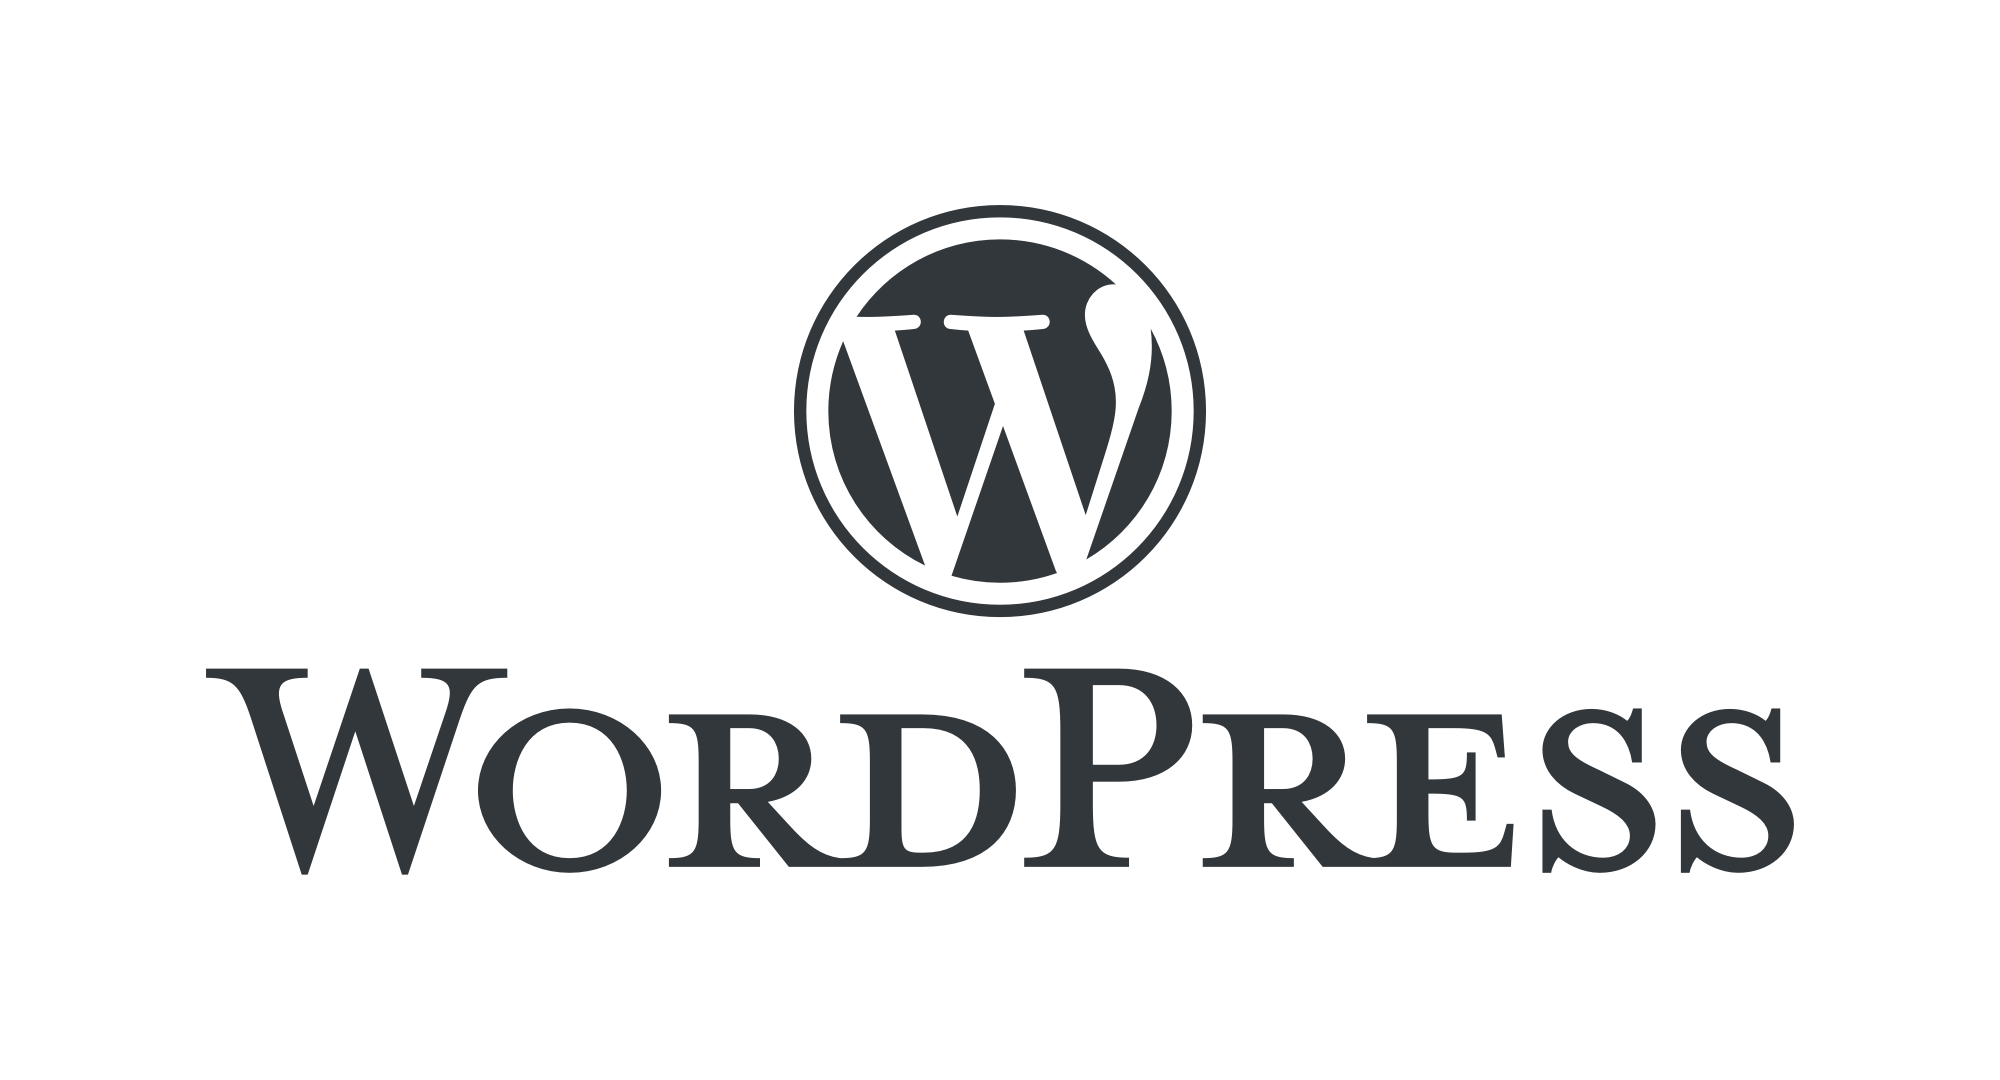 With so many WordPress themes to choose from, it can be difficult to know where to start.